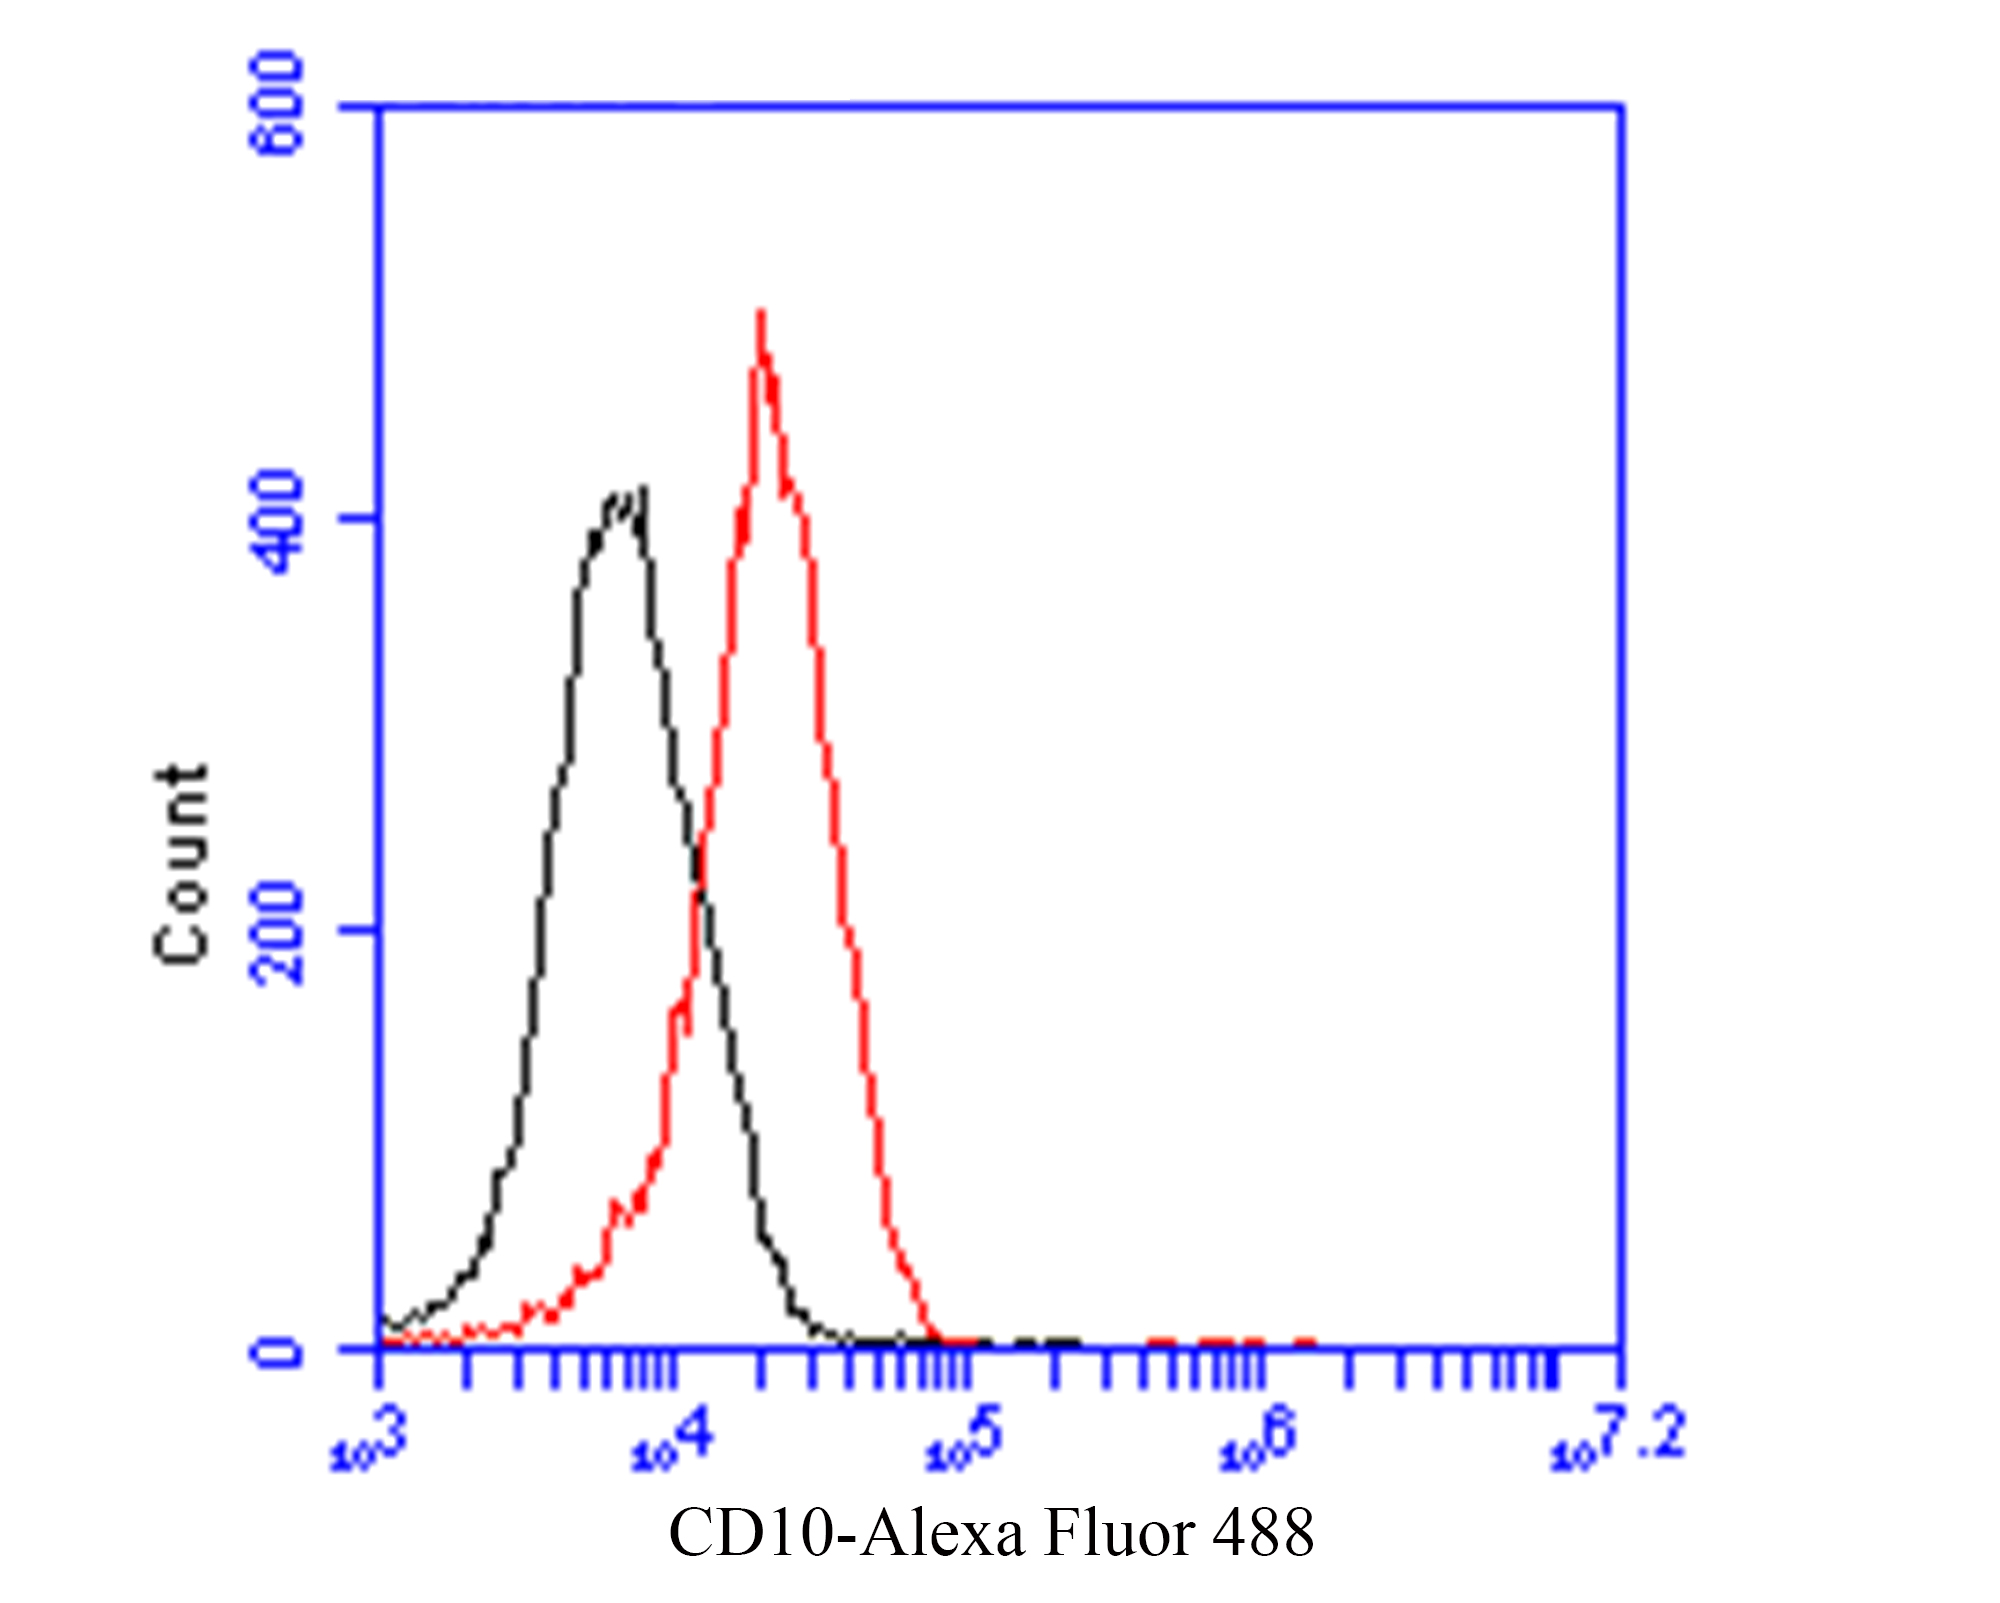 Flow cytometric analysis of CD10 was done on 293 cells. The cells were fixed, permeabilized and stained with the primary antibody (EM1901-25, 1/100) (red). After incubation of the primary antibody at room temperature for an hour, the cells were stained with a Alexa Fluor 488-conjugated goat anti-Mouse IgG Secondary antibody at 1/500 dilution for 30 minutes.Unlabelled sample was used as a control (cells without incubation with primary antibody; black).